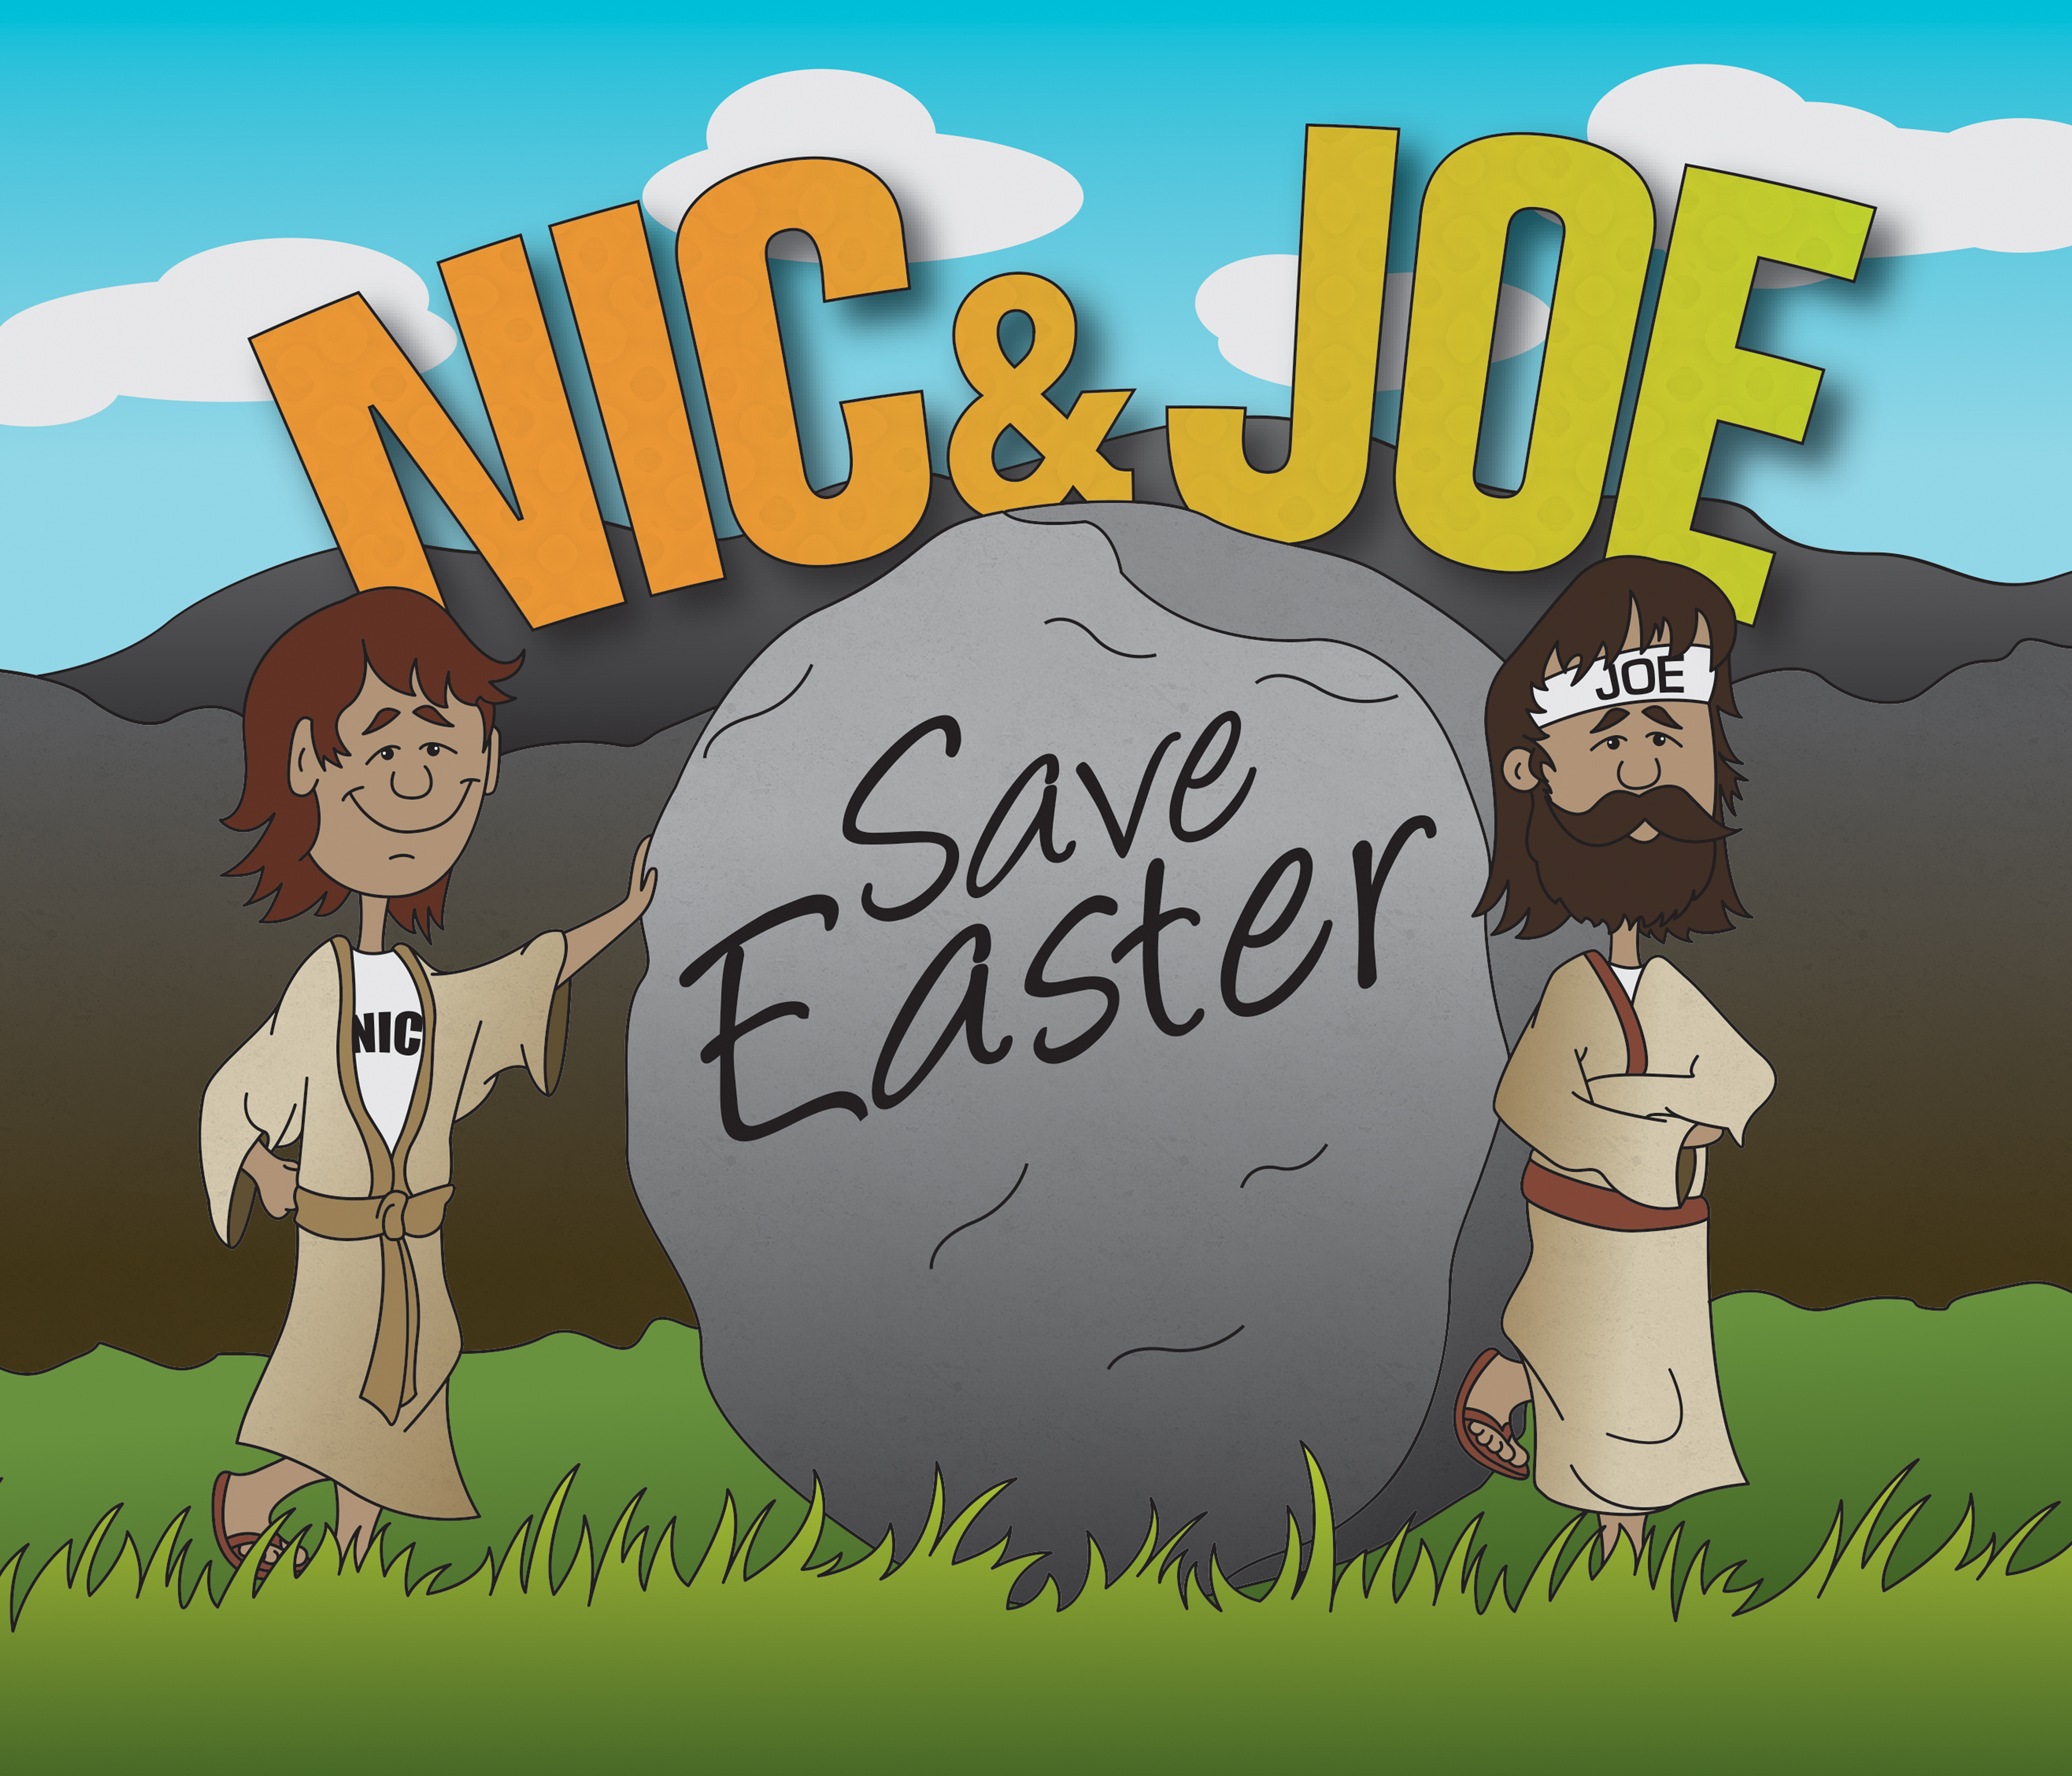 Easter 2015 - Nic & Joe Save Easter